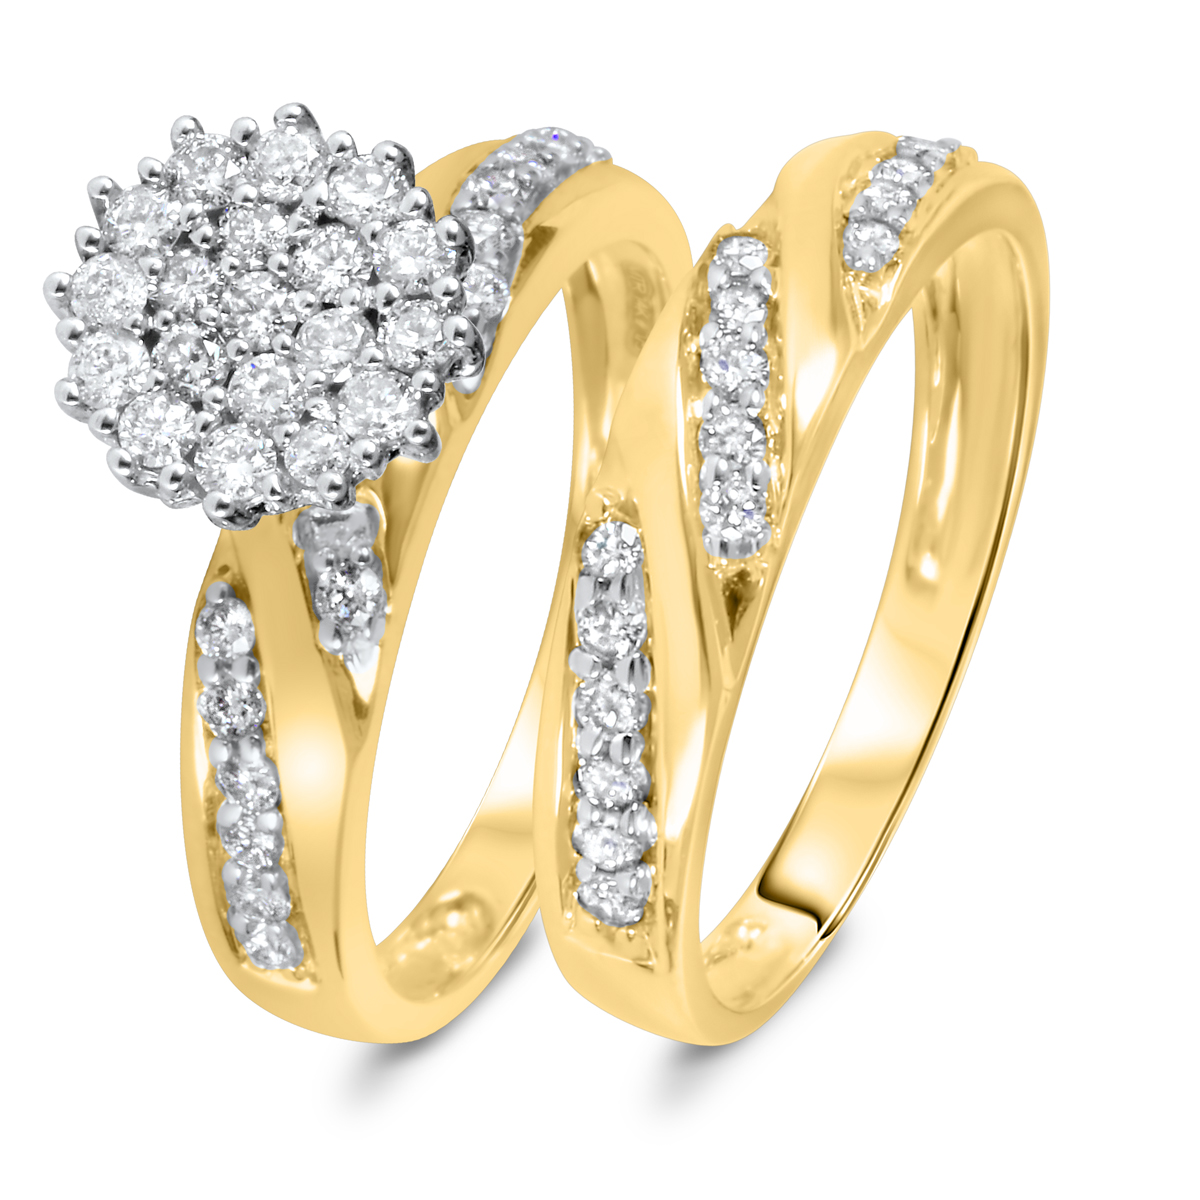 7/8 CT. T.W. Diamond Women's Bridal Wedding Ring Set 10K Yellow Gold